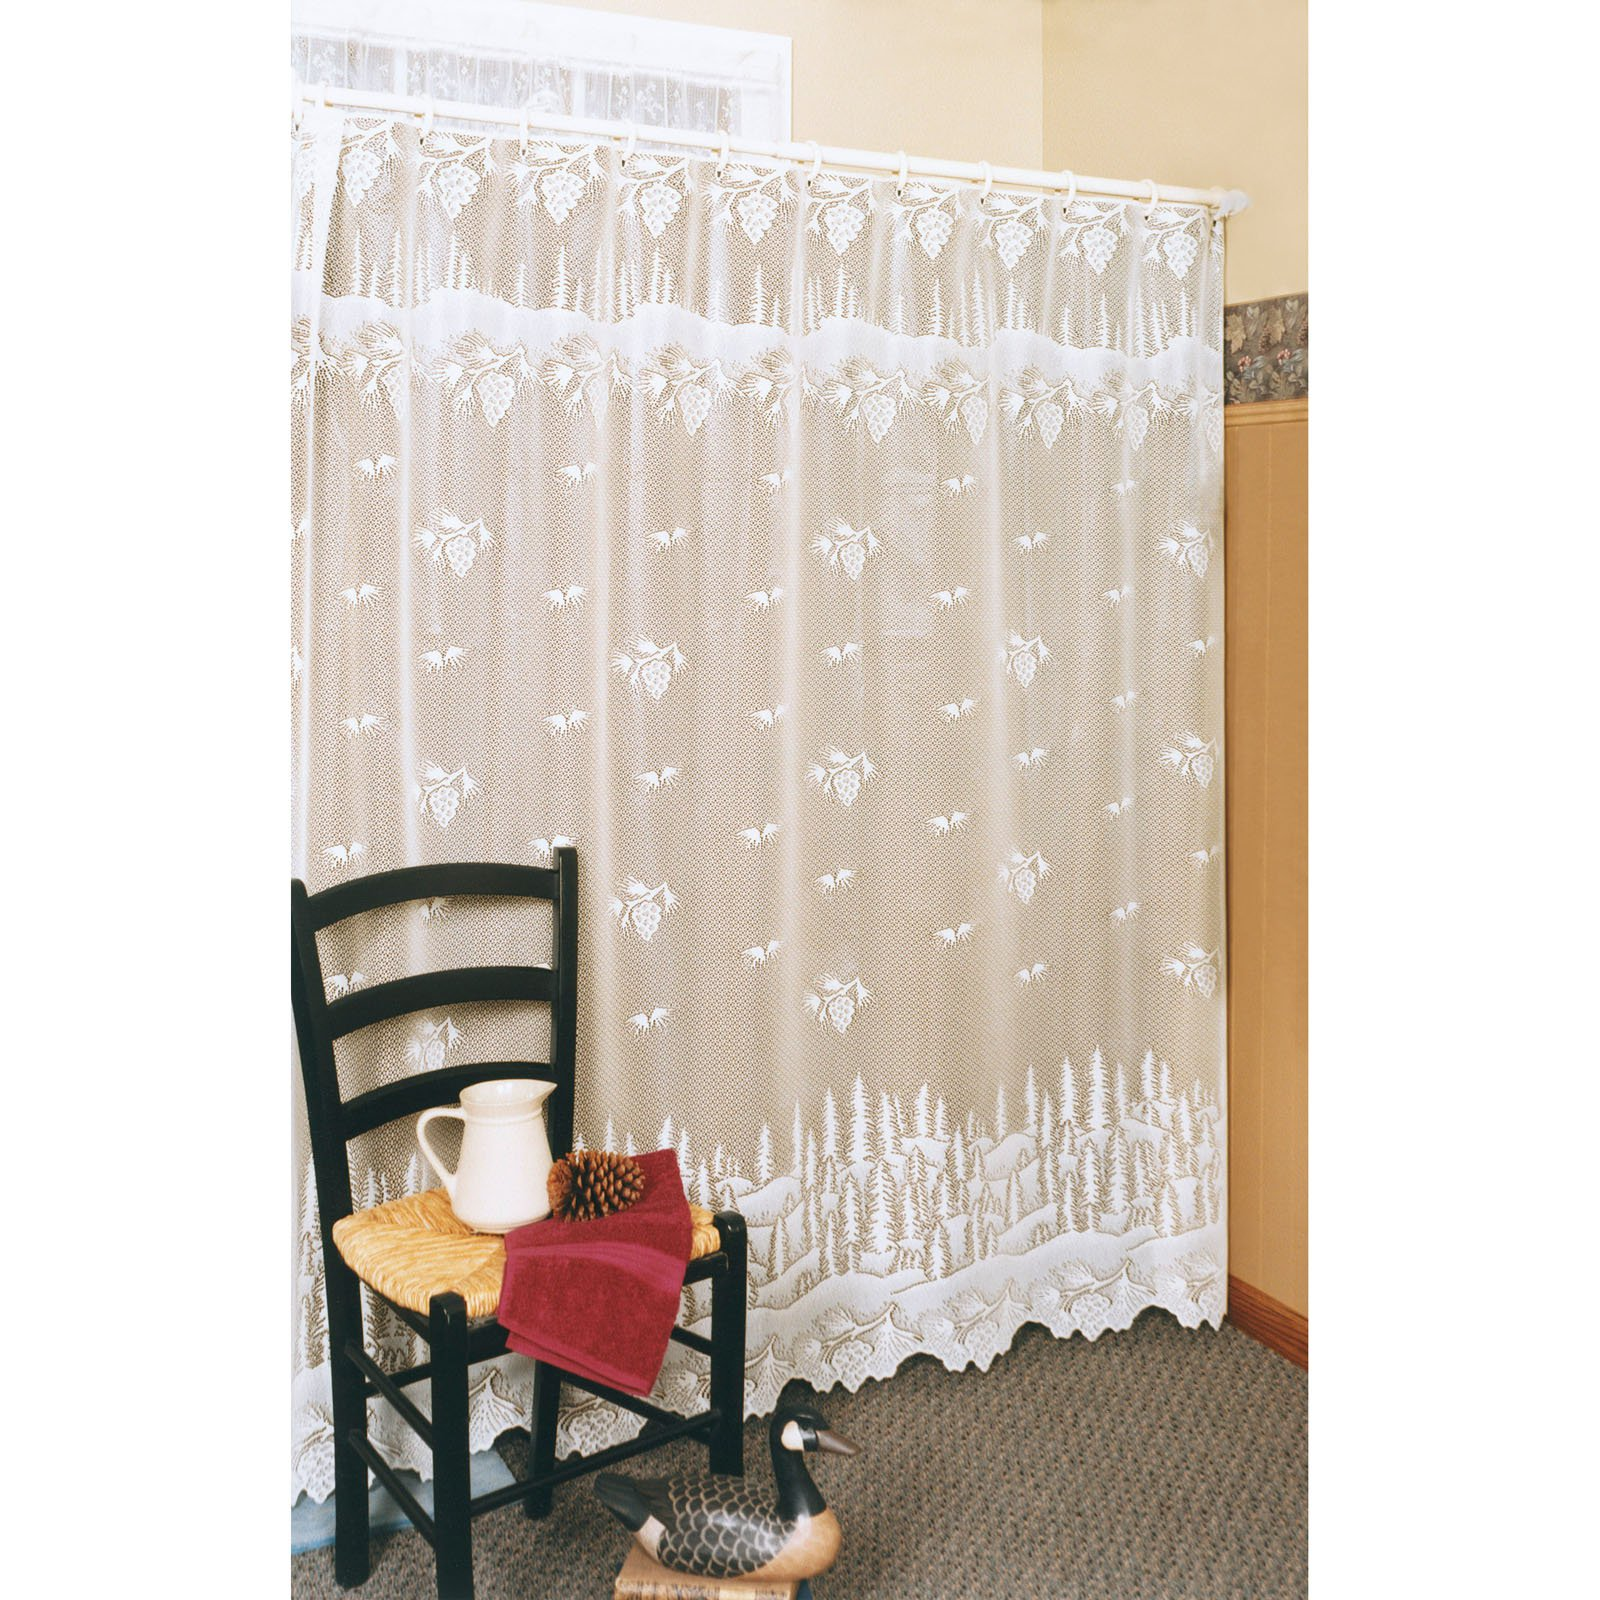 2 Colors Heritage Lace PINECONE Shower Curtain Select Ecru or White